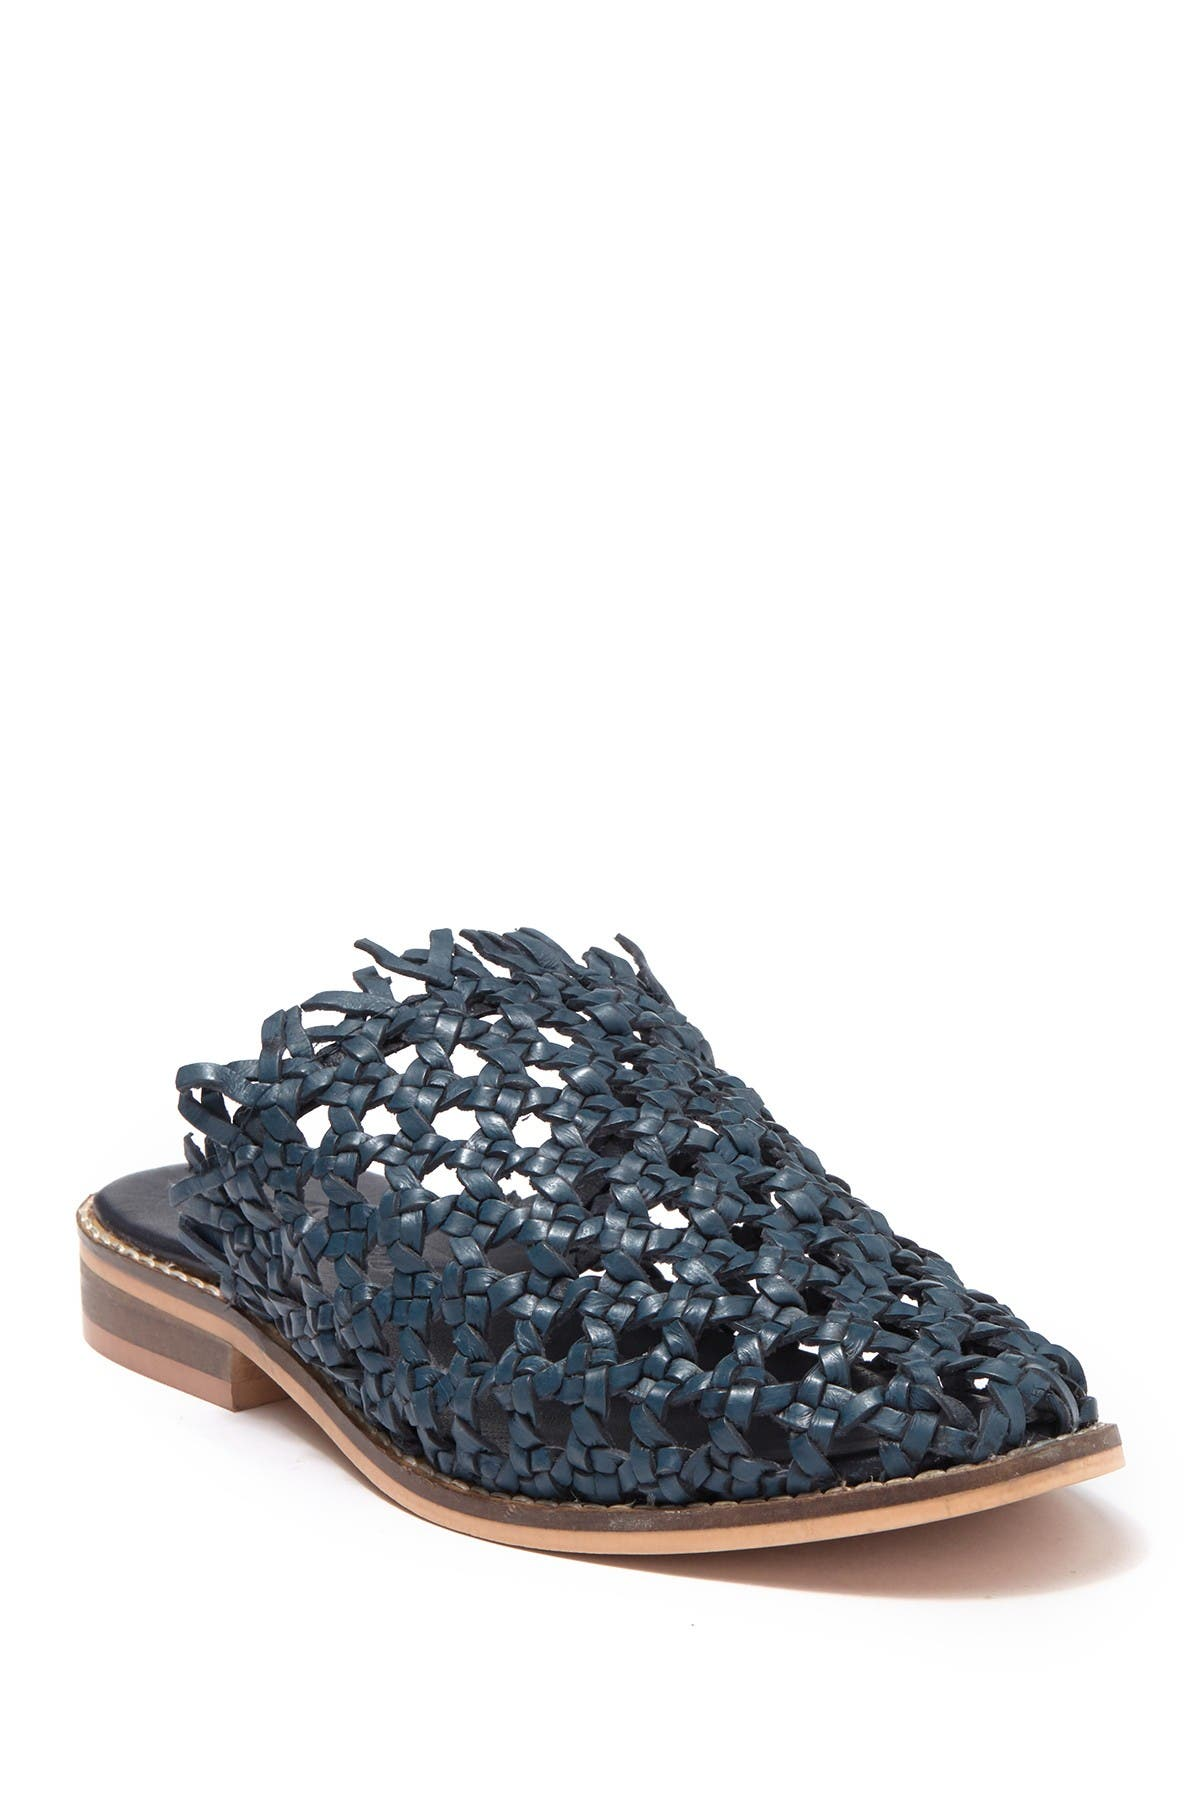 Image of Free People Mirage Woven Mule